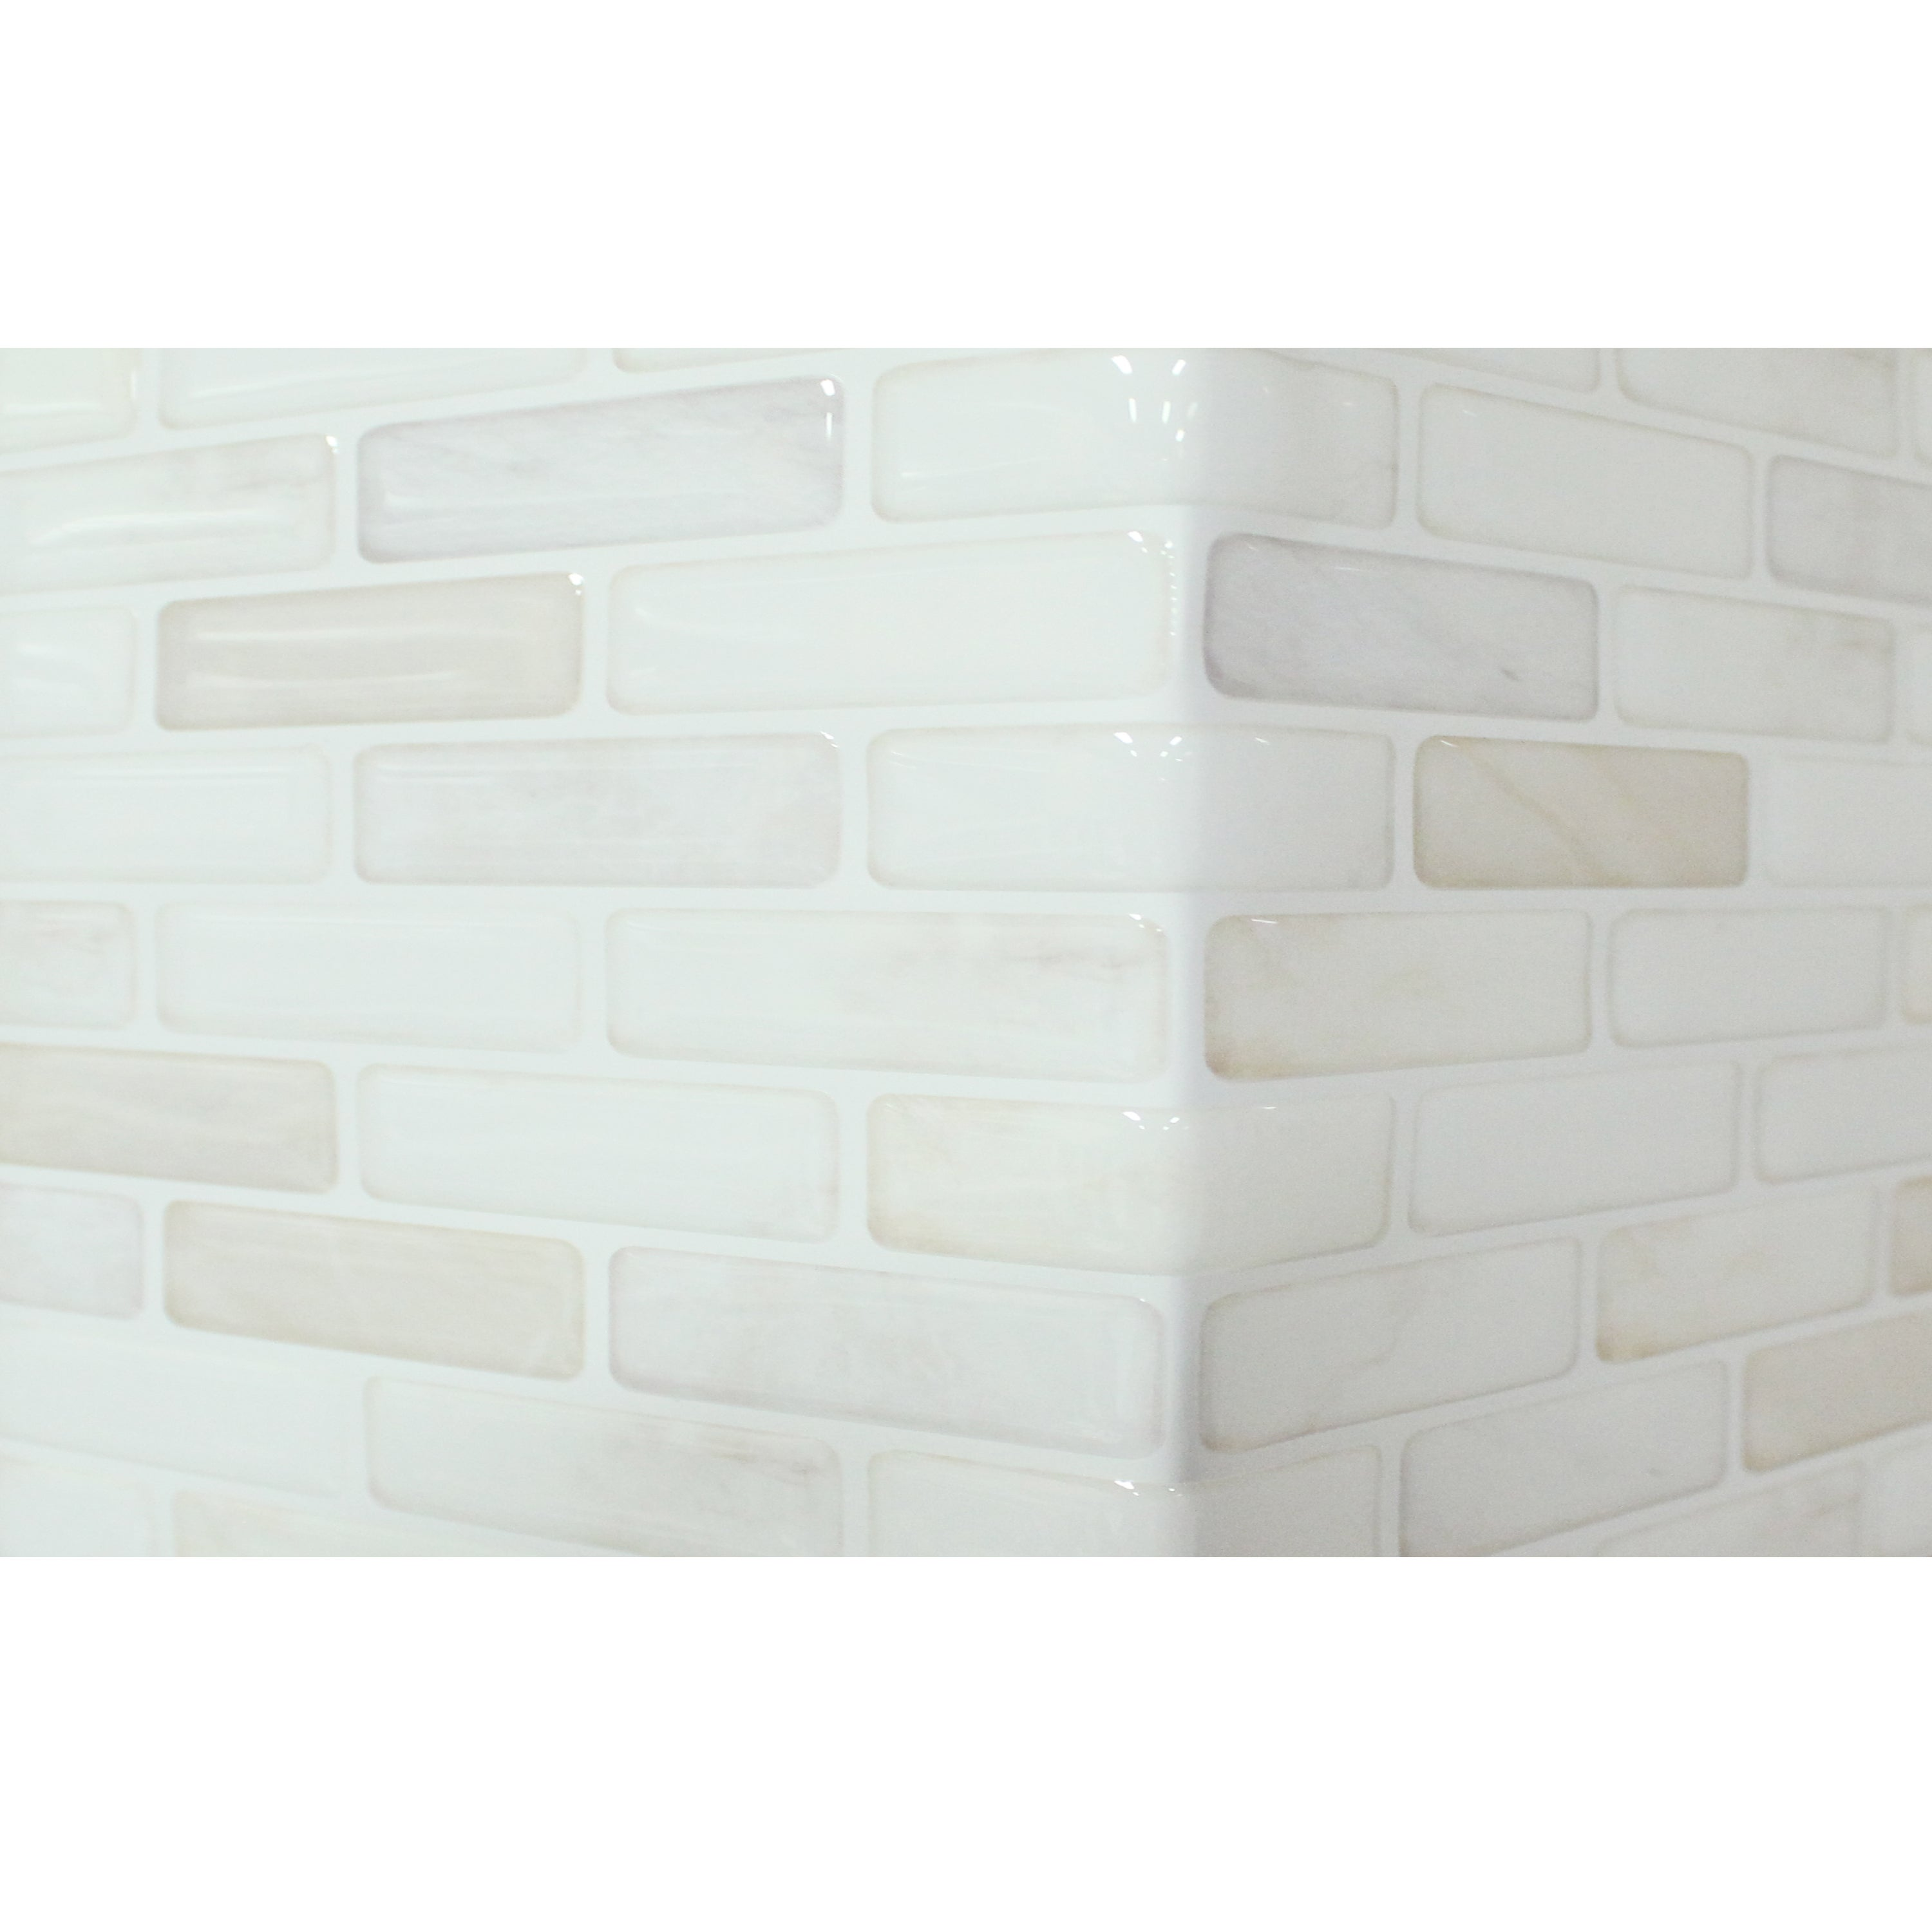 Beaustile brick white 4 piece decorative adhesive faux tile sheets beaustile brick white 4 piece decorative adhesive faux tile sheets 54in x 148in free shipping on orders over 45 overstock 17500714 dailygadgetfo Gallery